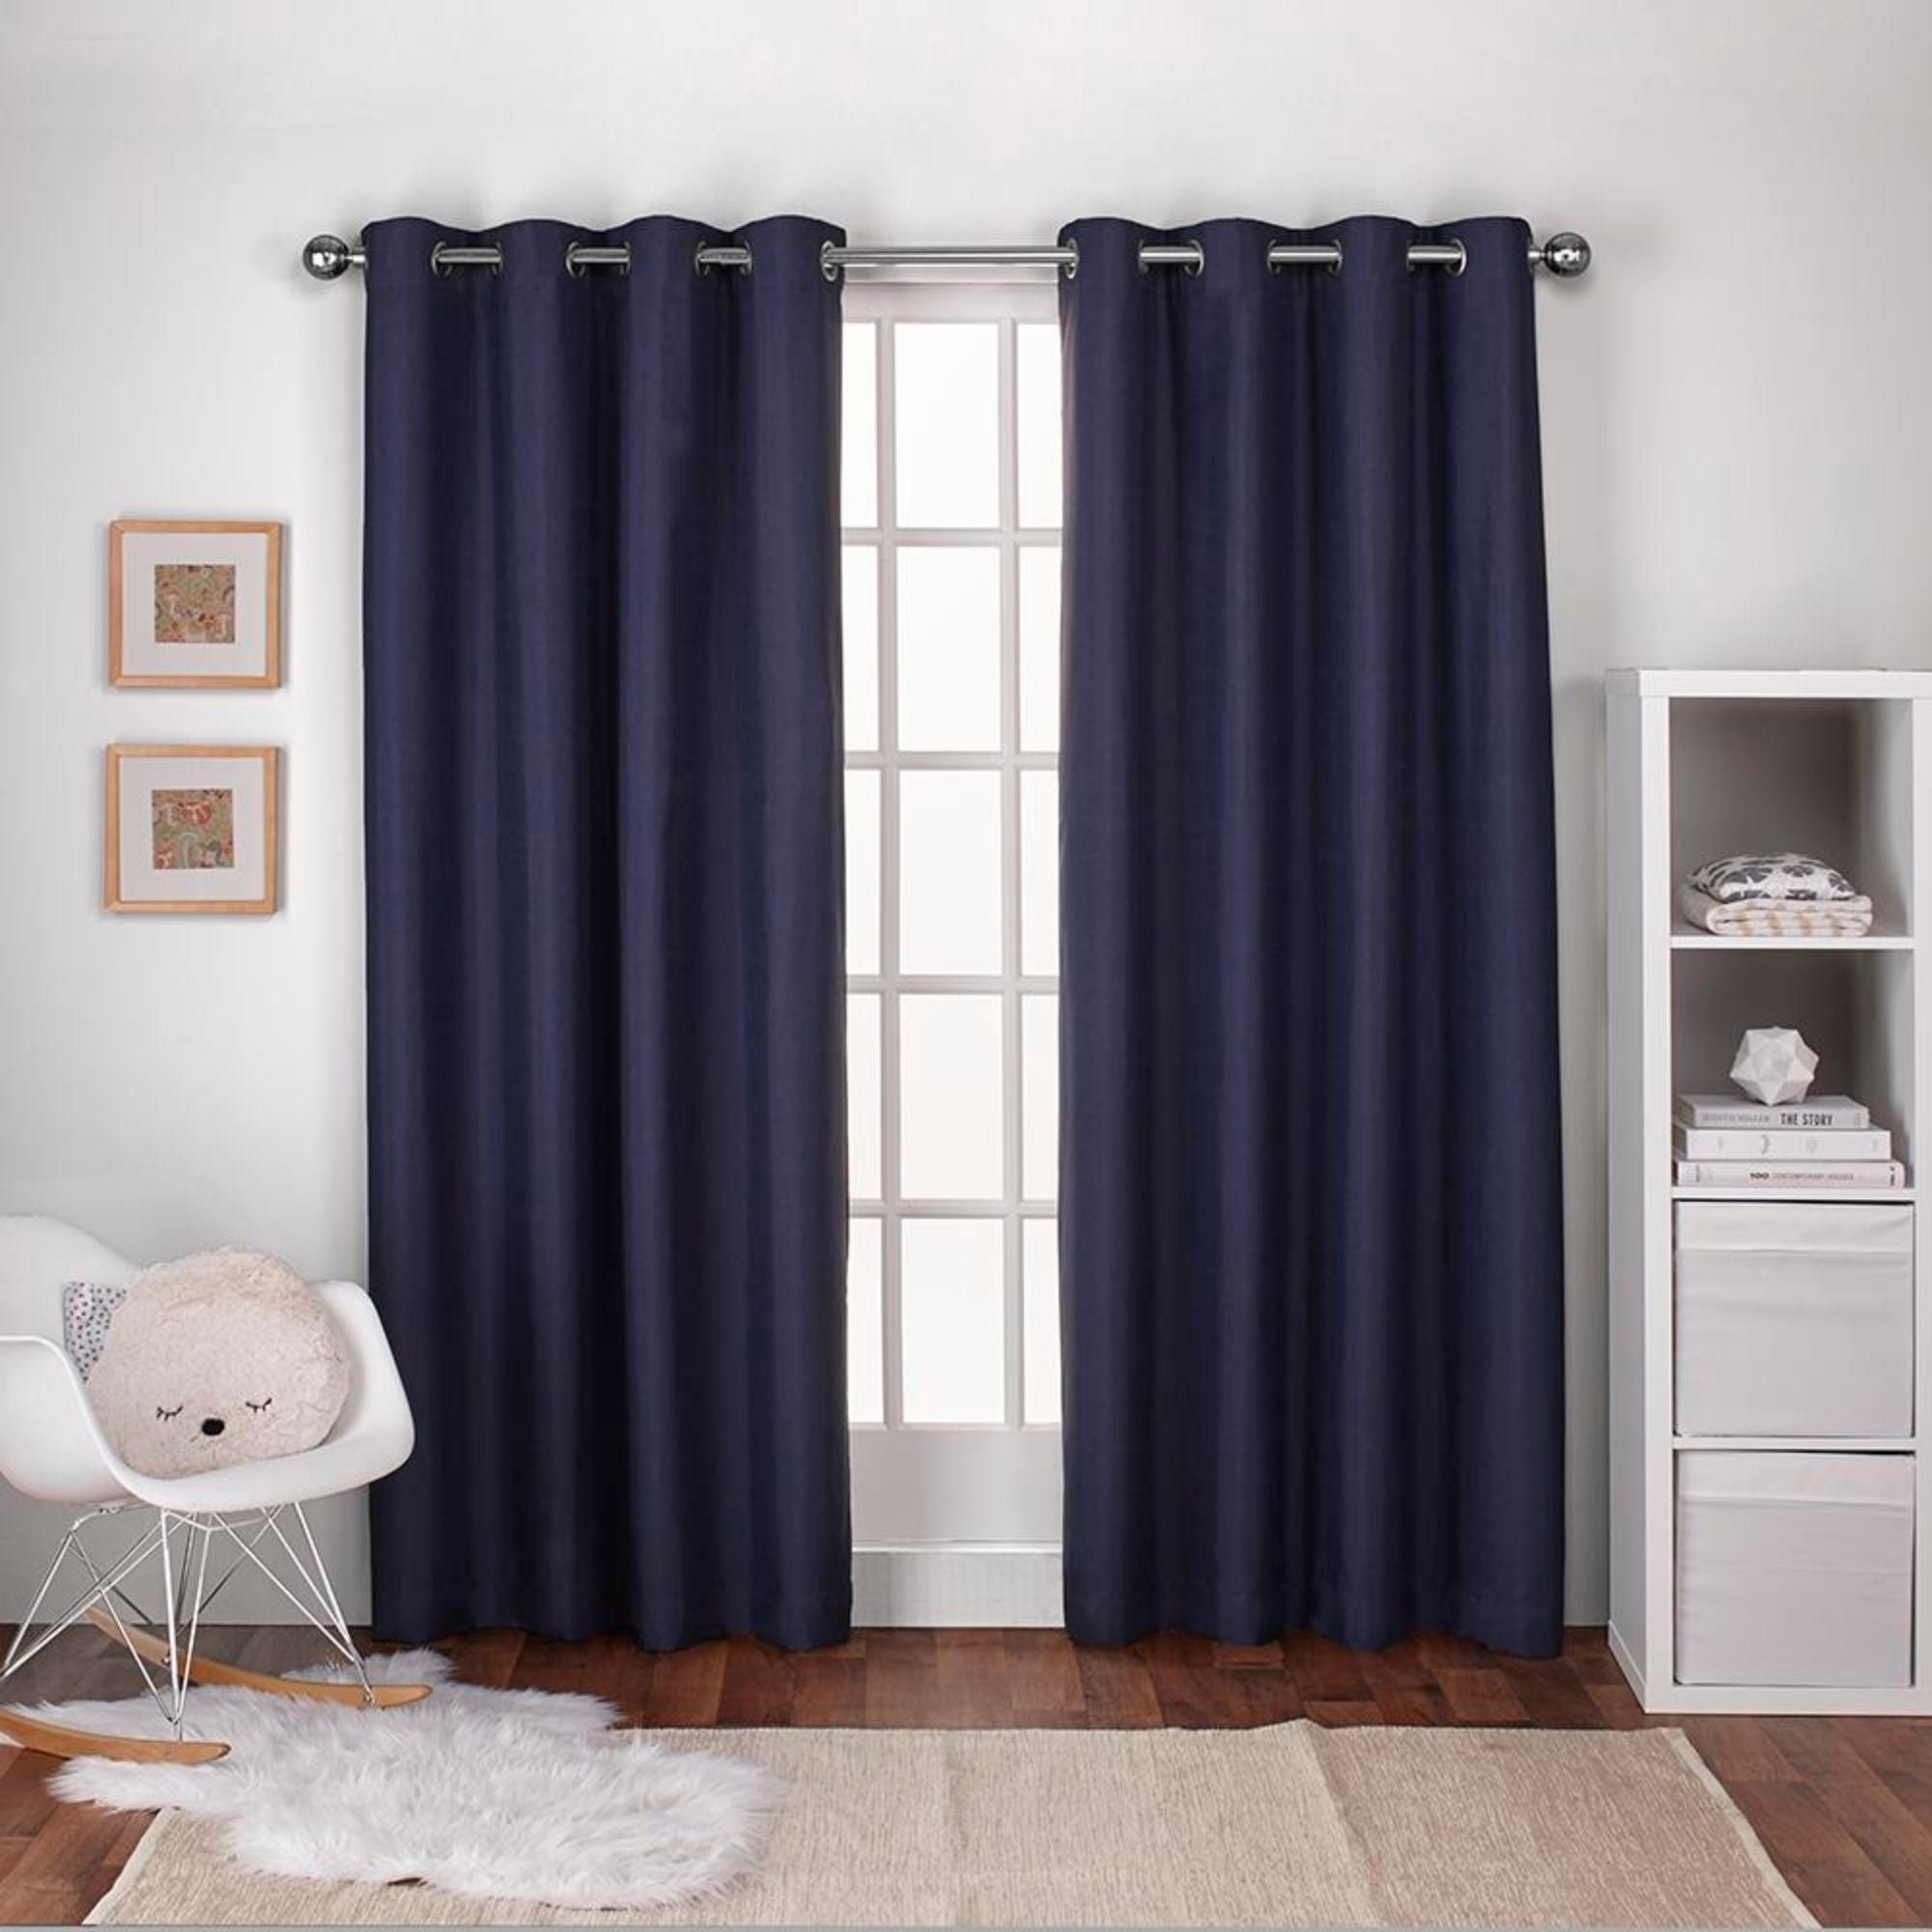 Ati Home Linen Thermal Woven Blackout Grommet Top Curtain Panel Pair Throughout Thermal Woven Blackout Grommet Top Curtain Panel Pairs (View 6 of 30)